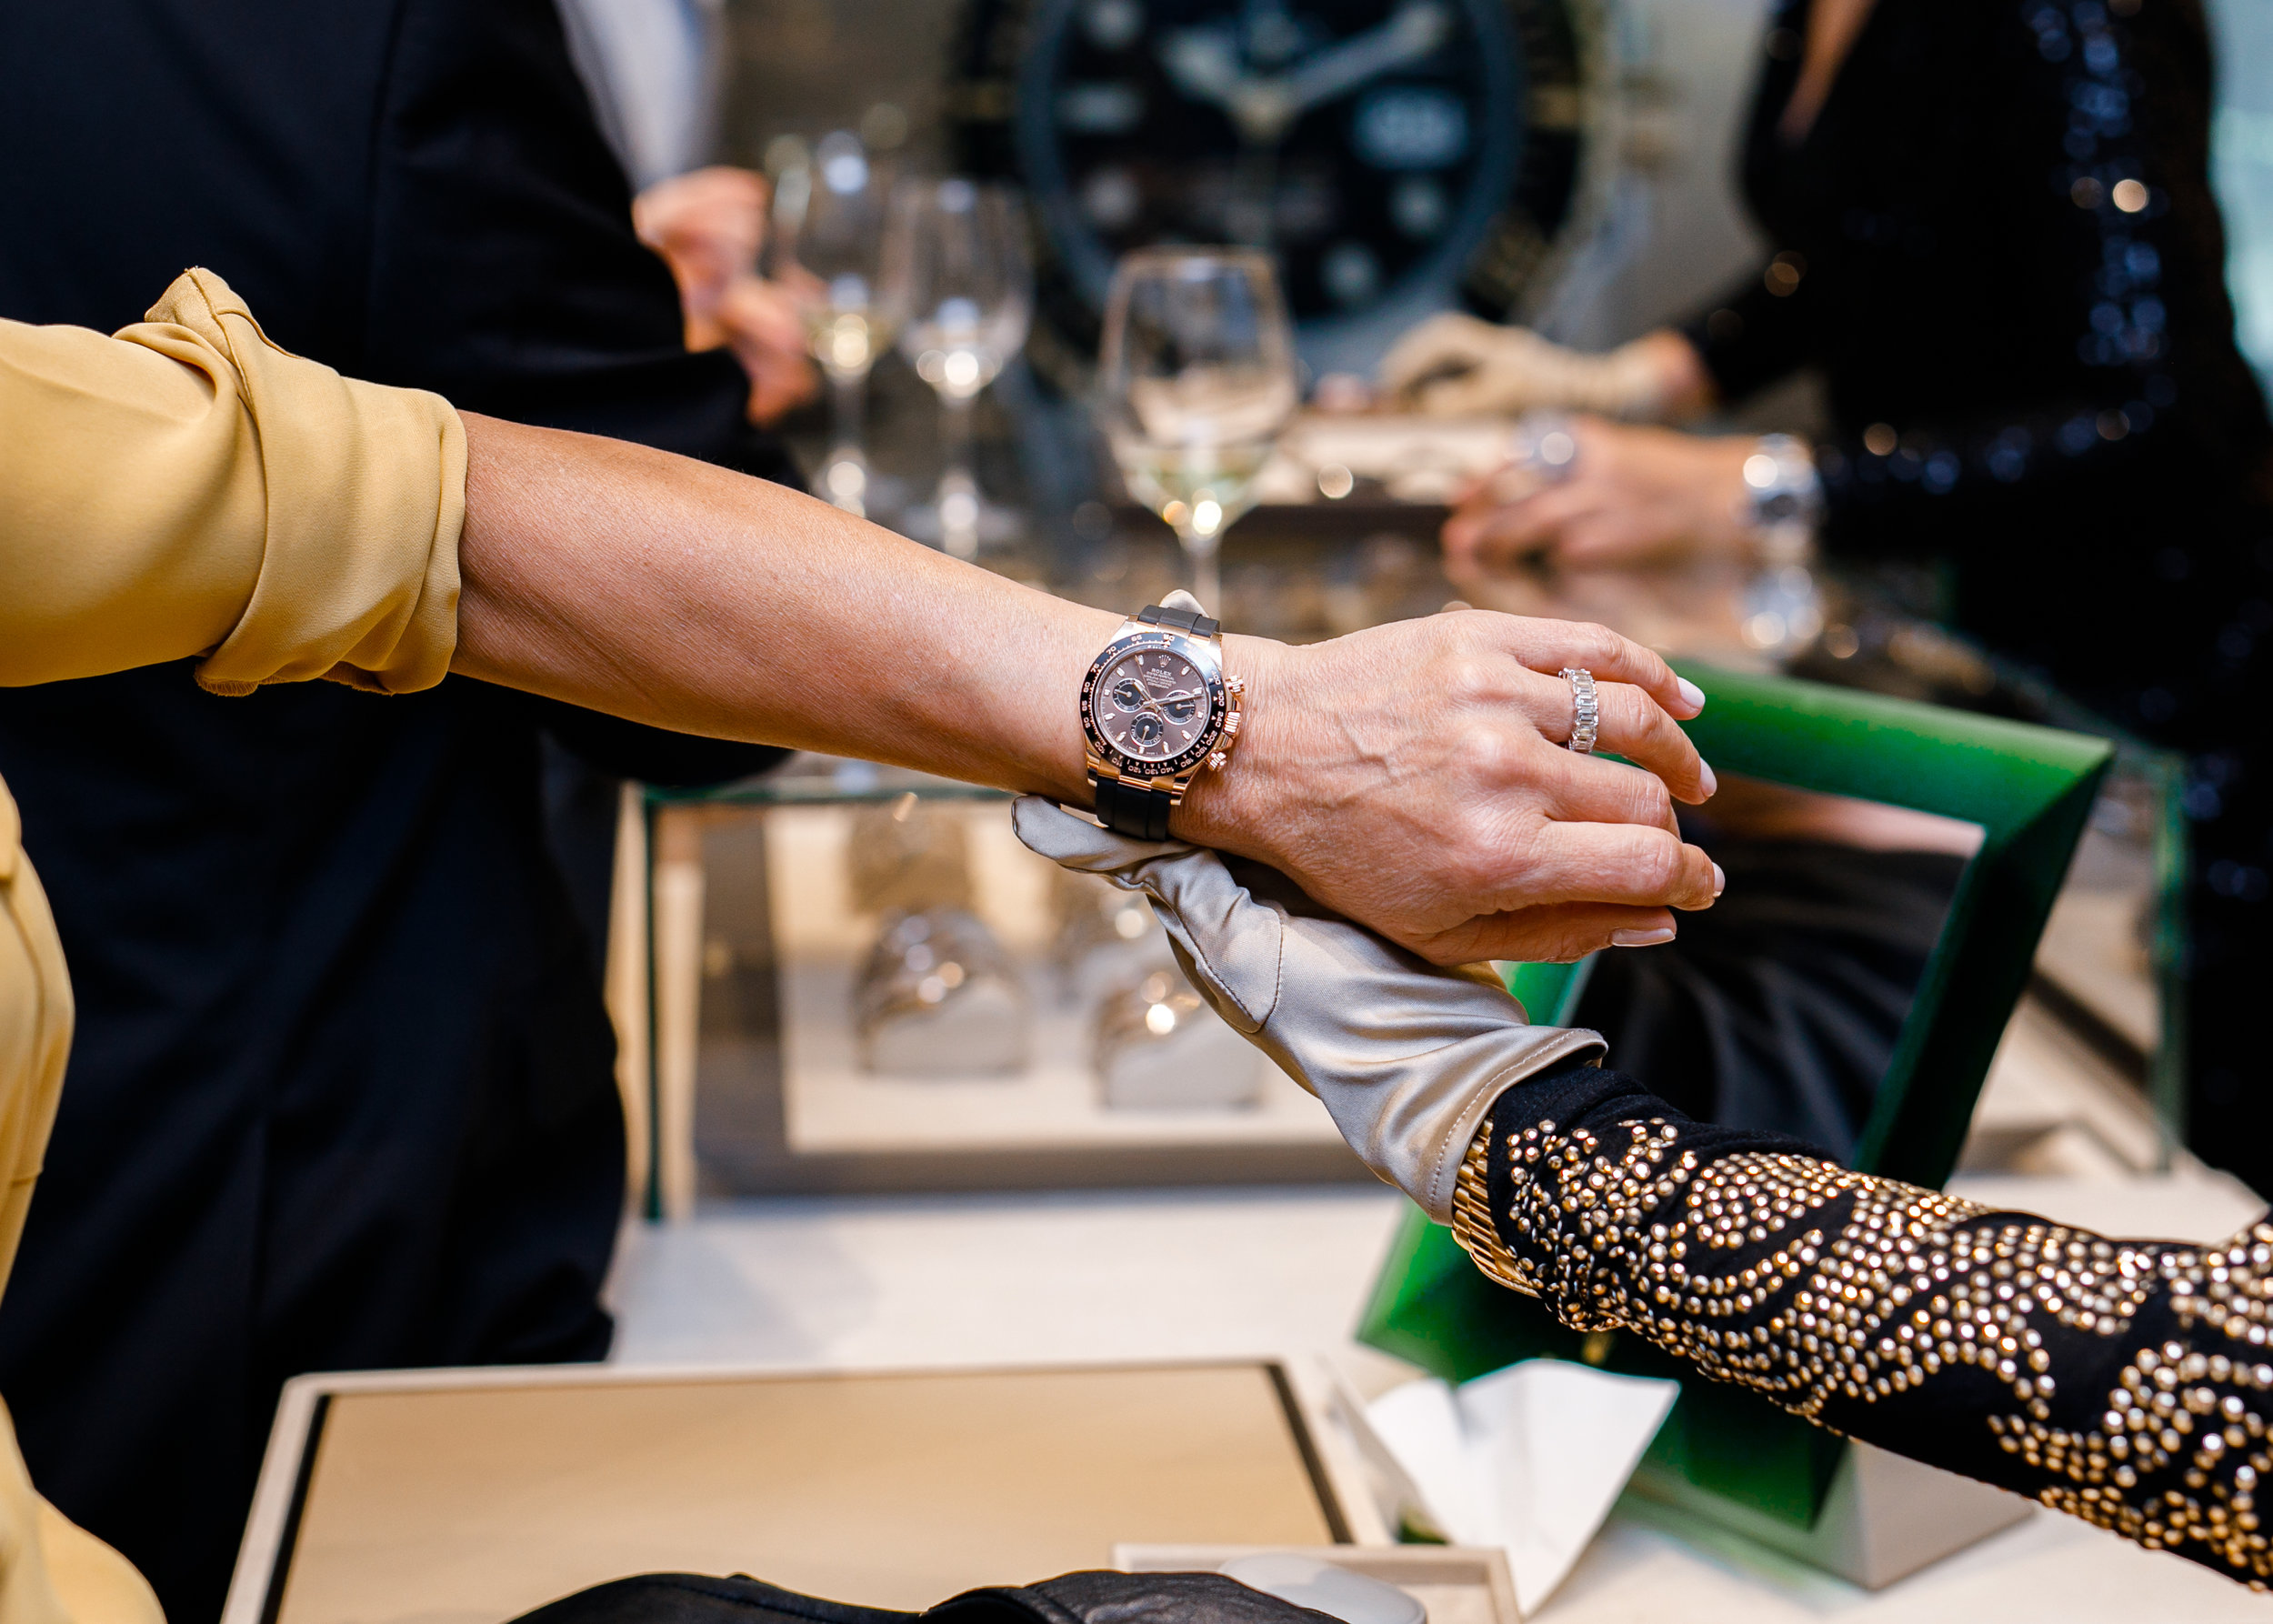 RDV-Rolex-Event-2019-HR-079-5311.JPG